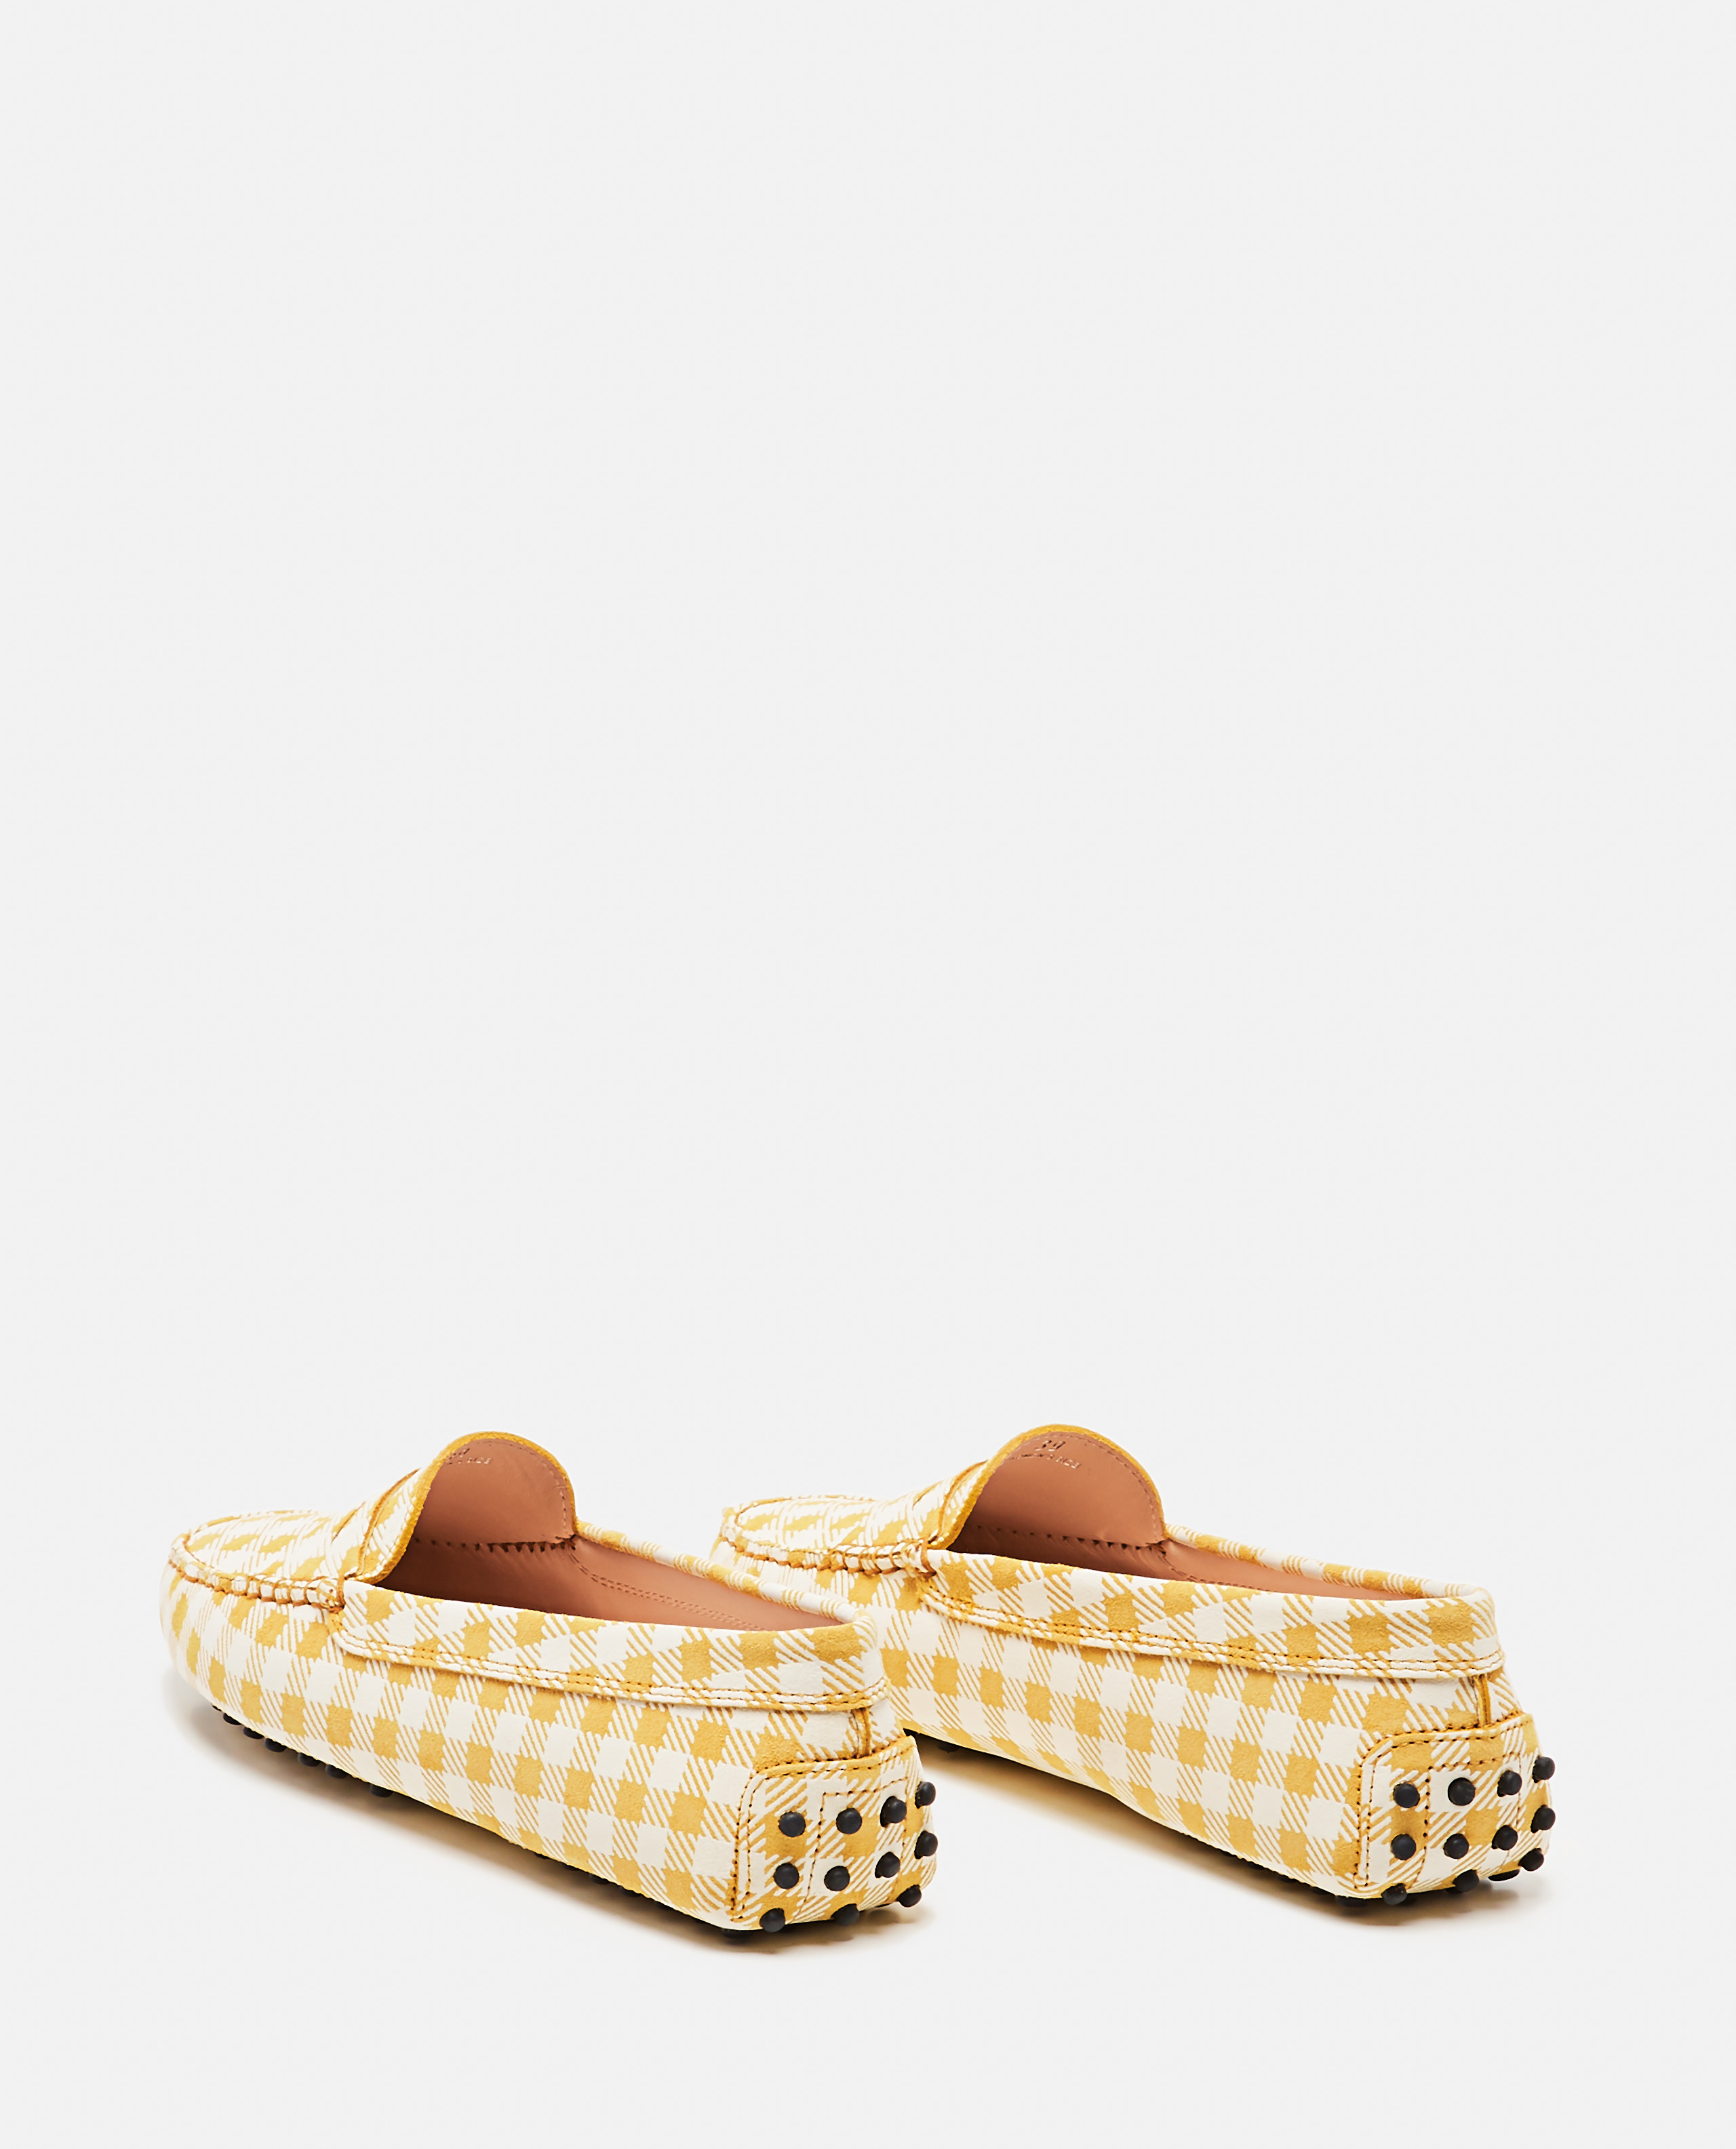 TOD'S Leathers TOD'S   LEATHER GOMMINO LOAFER WITH CHECKS PRINT